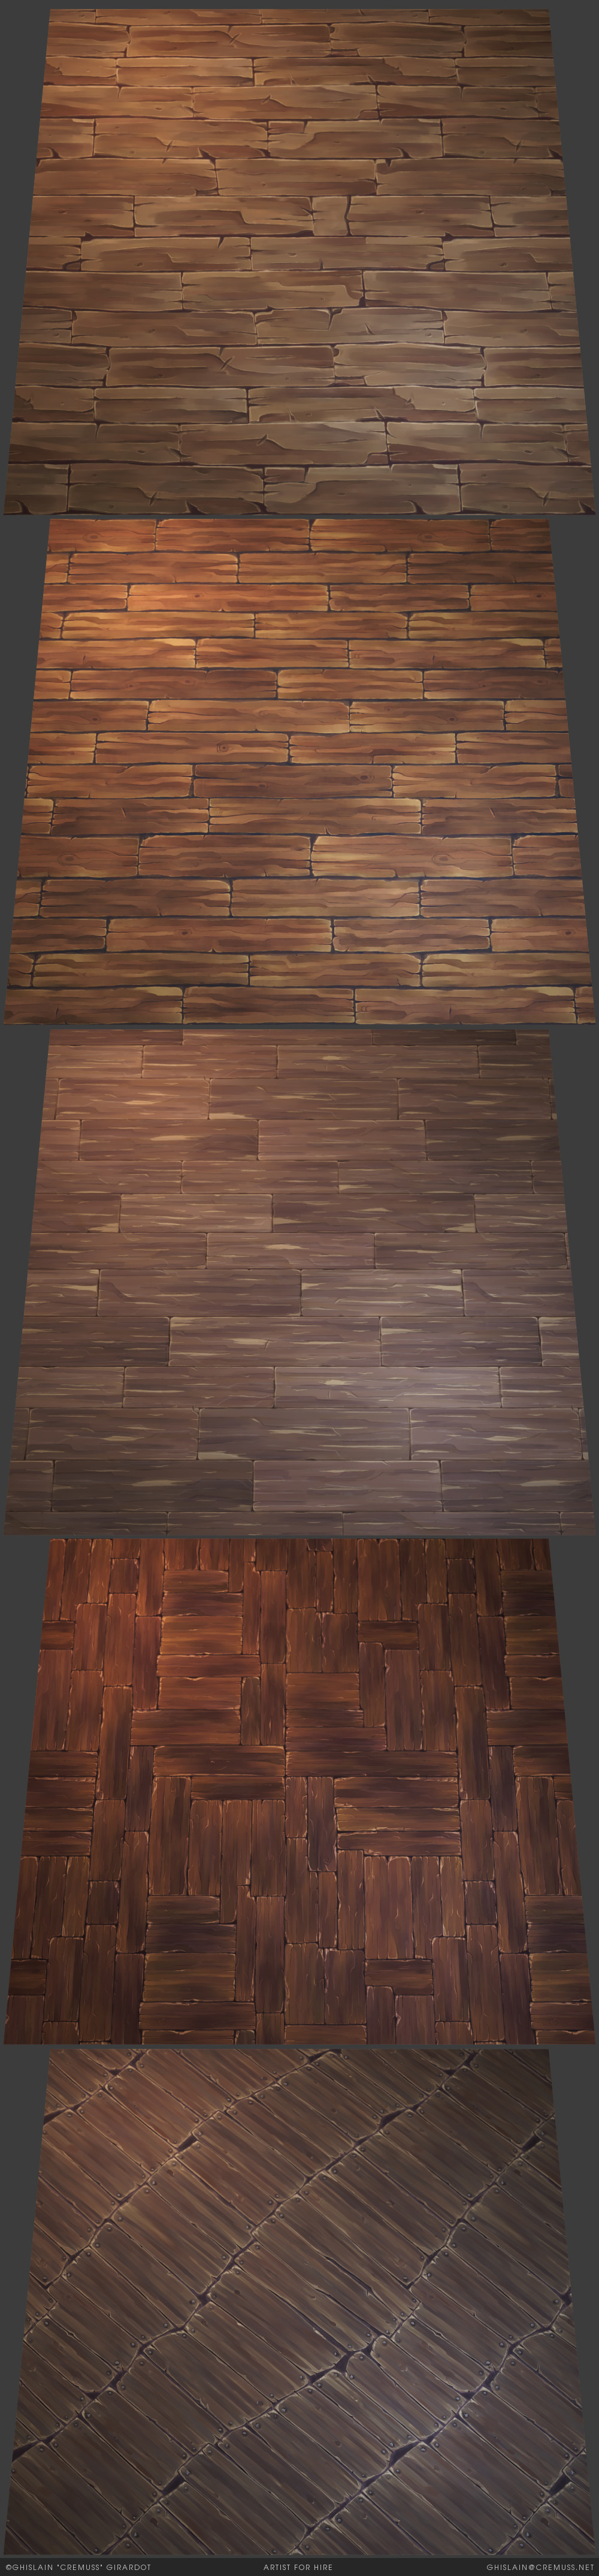 Handpainted stylized wood planks textures Available on sale on